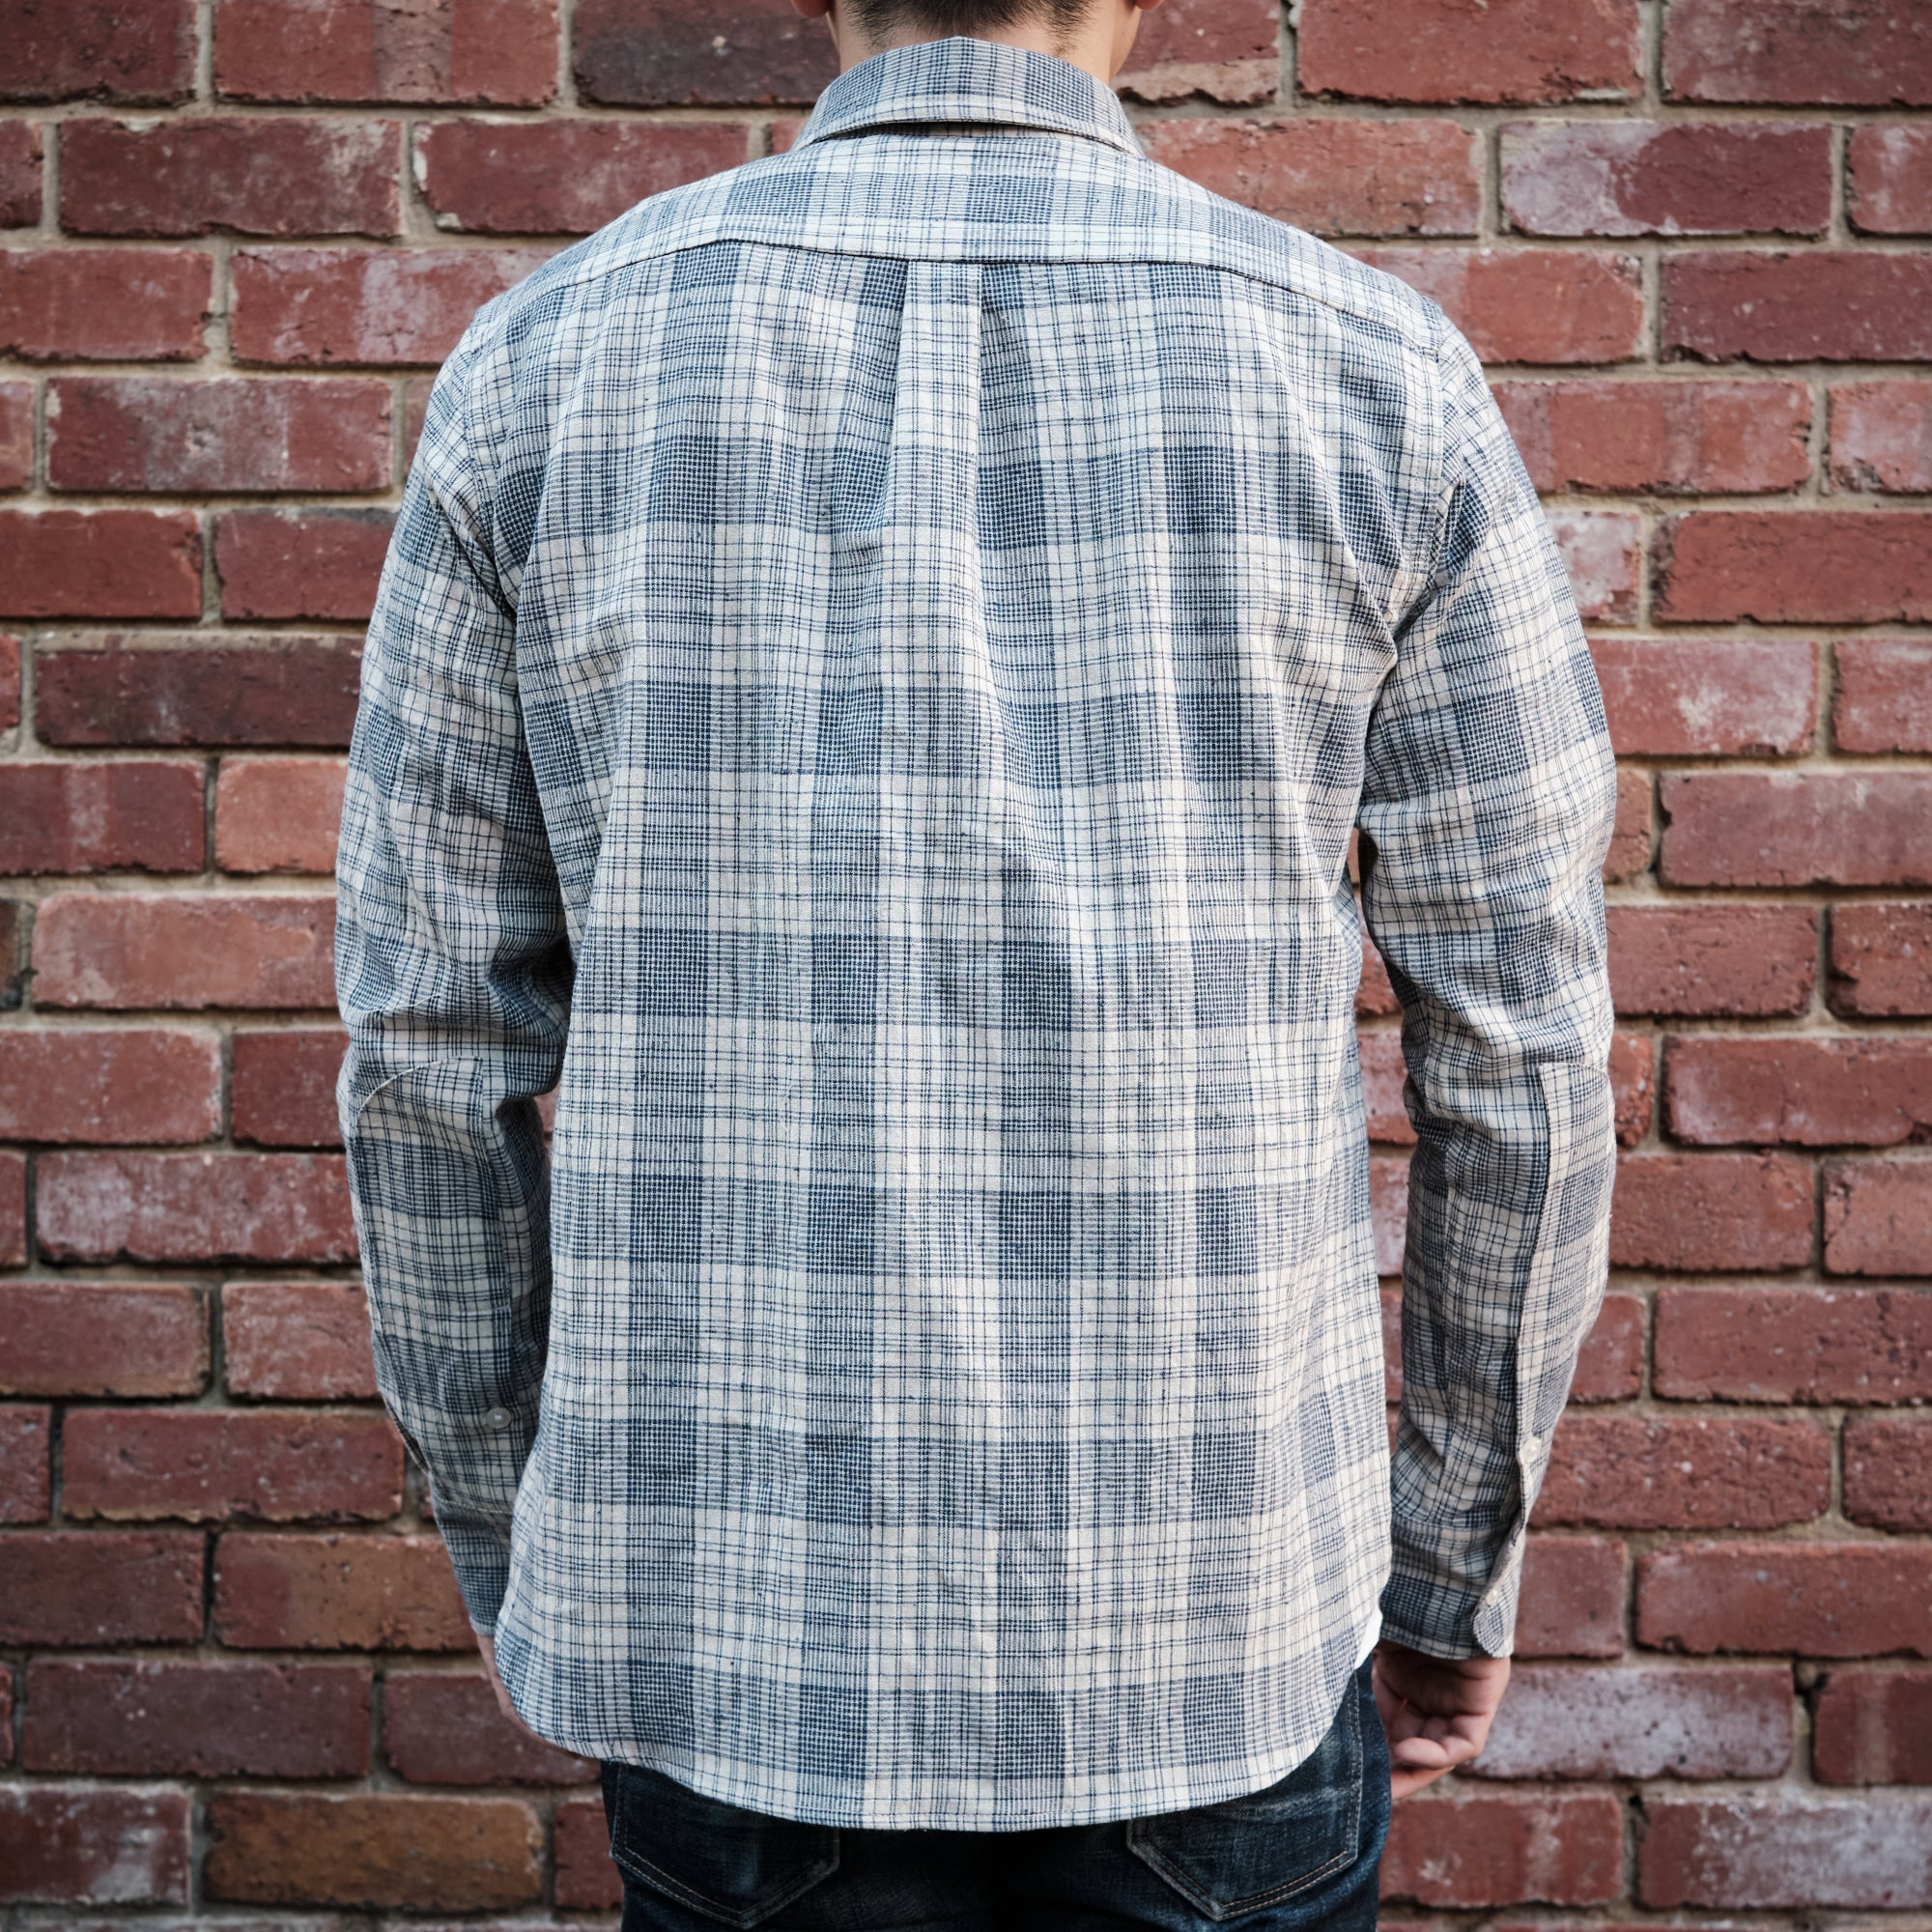 Load image into Gallery viewer, Rogue Territory -Jumper Shirt in linen blend plaid